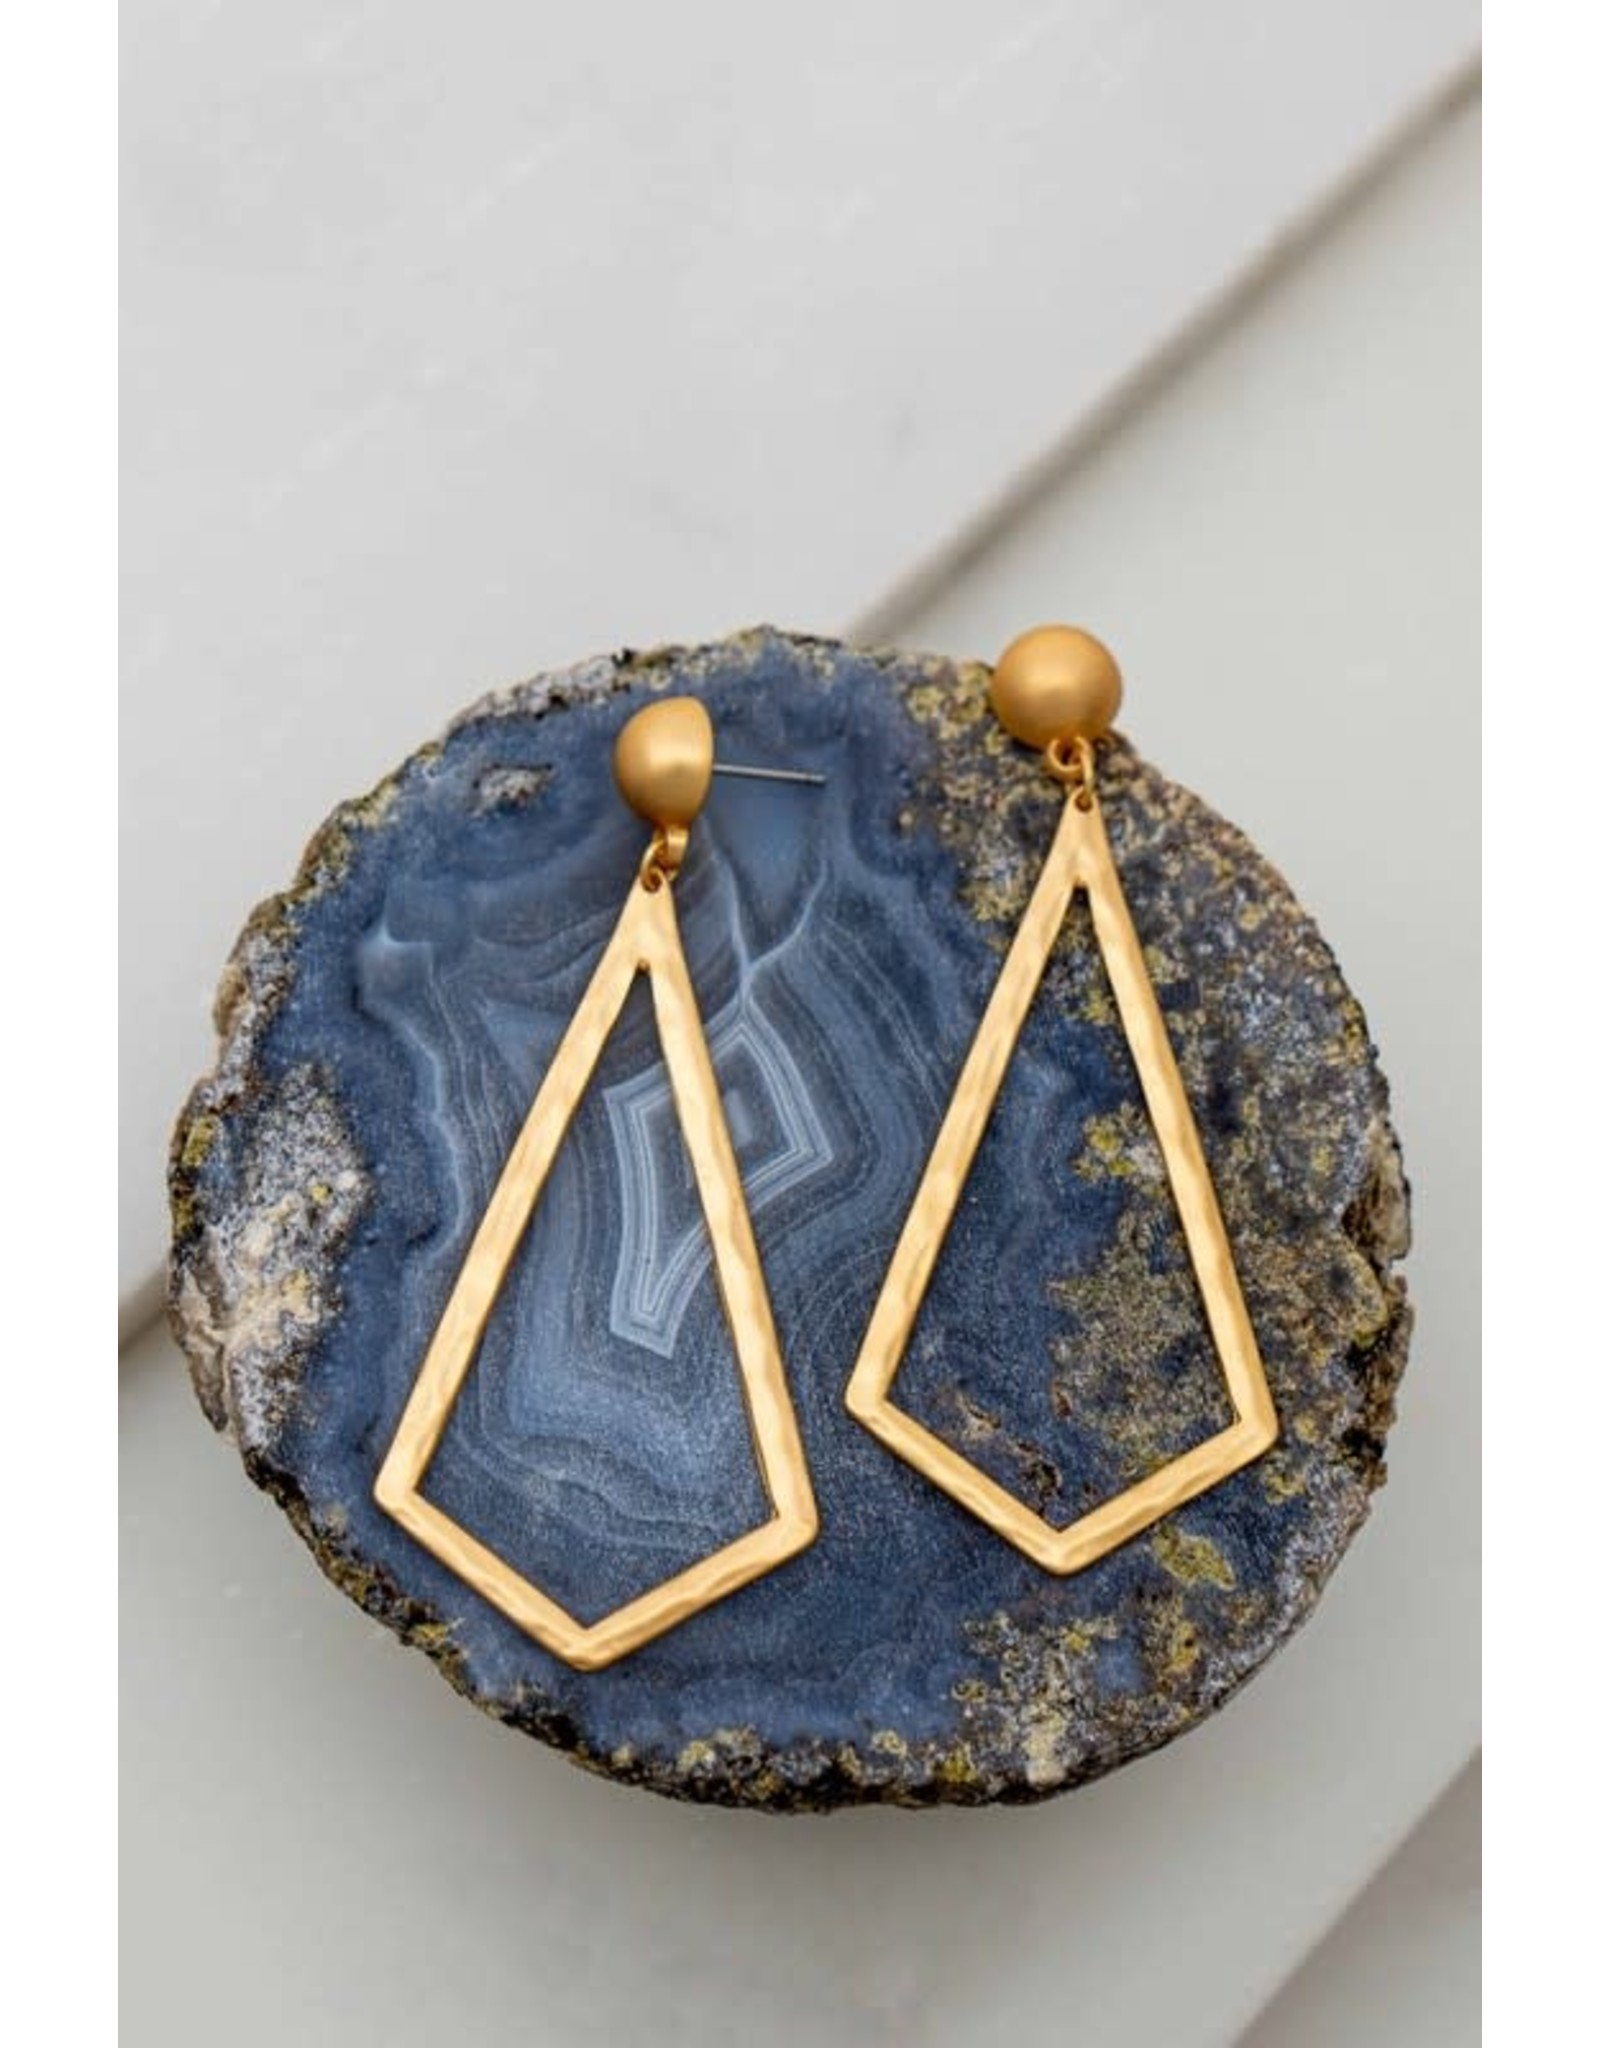 A Hammered Geometric Cut Out Earring That Is Sure To Compliment Any Outfit. Size + Fit Length: 3 In. Hammered Triangle Metal Hoop Earrings